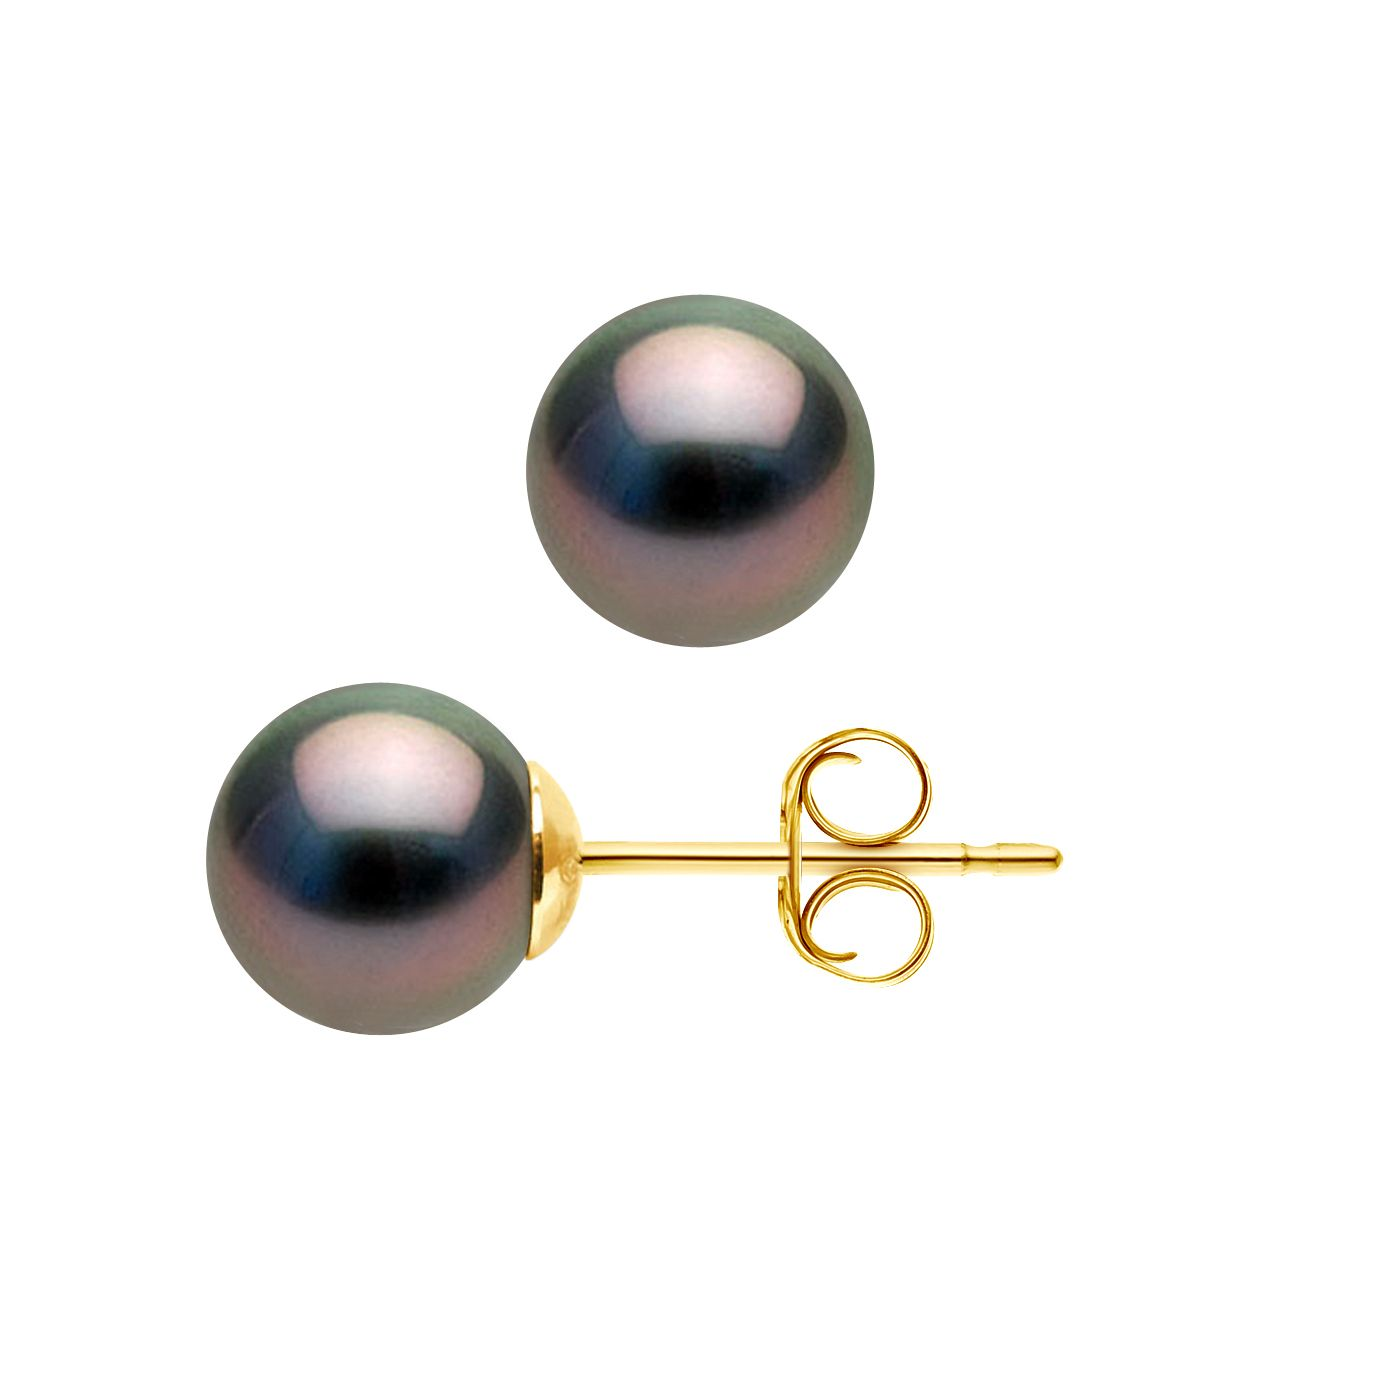 DIADEMA - Earrings - Yellow Gold and Real Tahitian Pearls